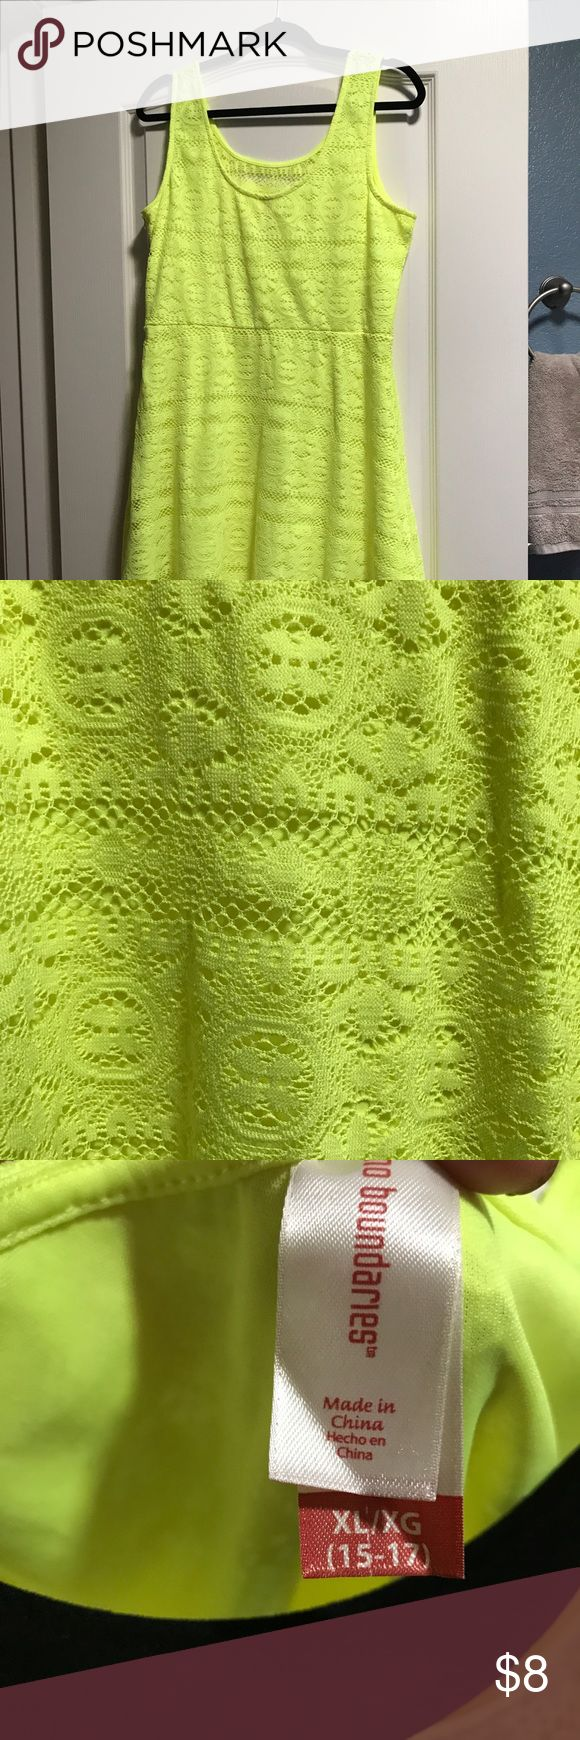 """""""Highlighter"""" neon yellow lace dress Adorable lace highlighter neon yellow dress. A-line or skater dress. Above knee. Pair with a cute belt and statement necklace! I wore this with a cardigan to work! Lots of compliments! You'll be sure to get noticed in this fun, bright dress! Size XL   Note: color in pics seems pastel yellow, however this dress is highlighter NEON yellow. See actual yellow highlighter in pic for reference. No Boundaries Dresses"""